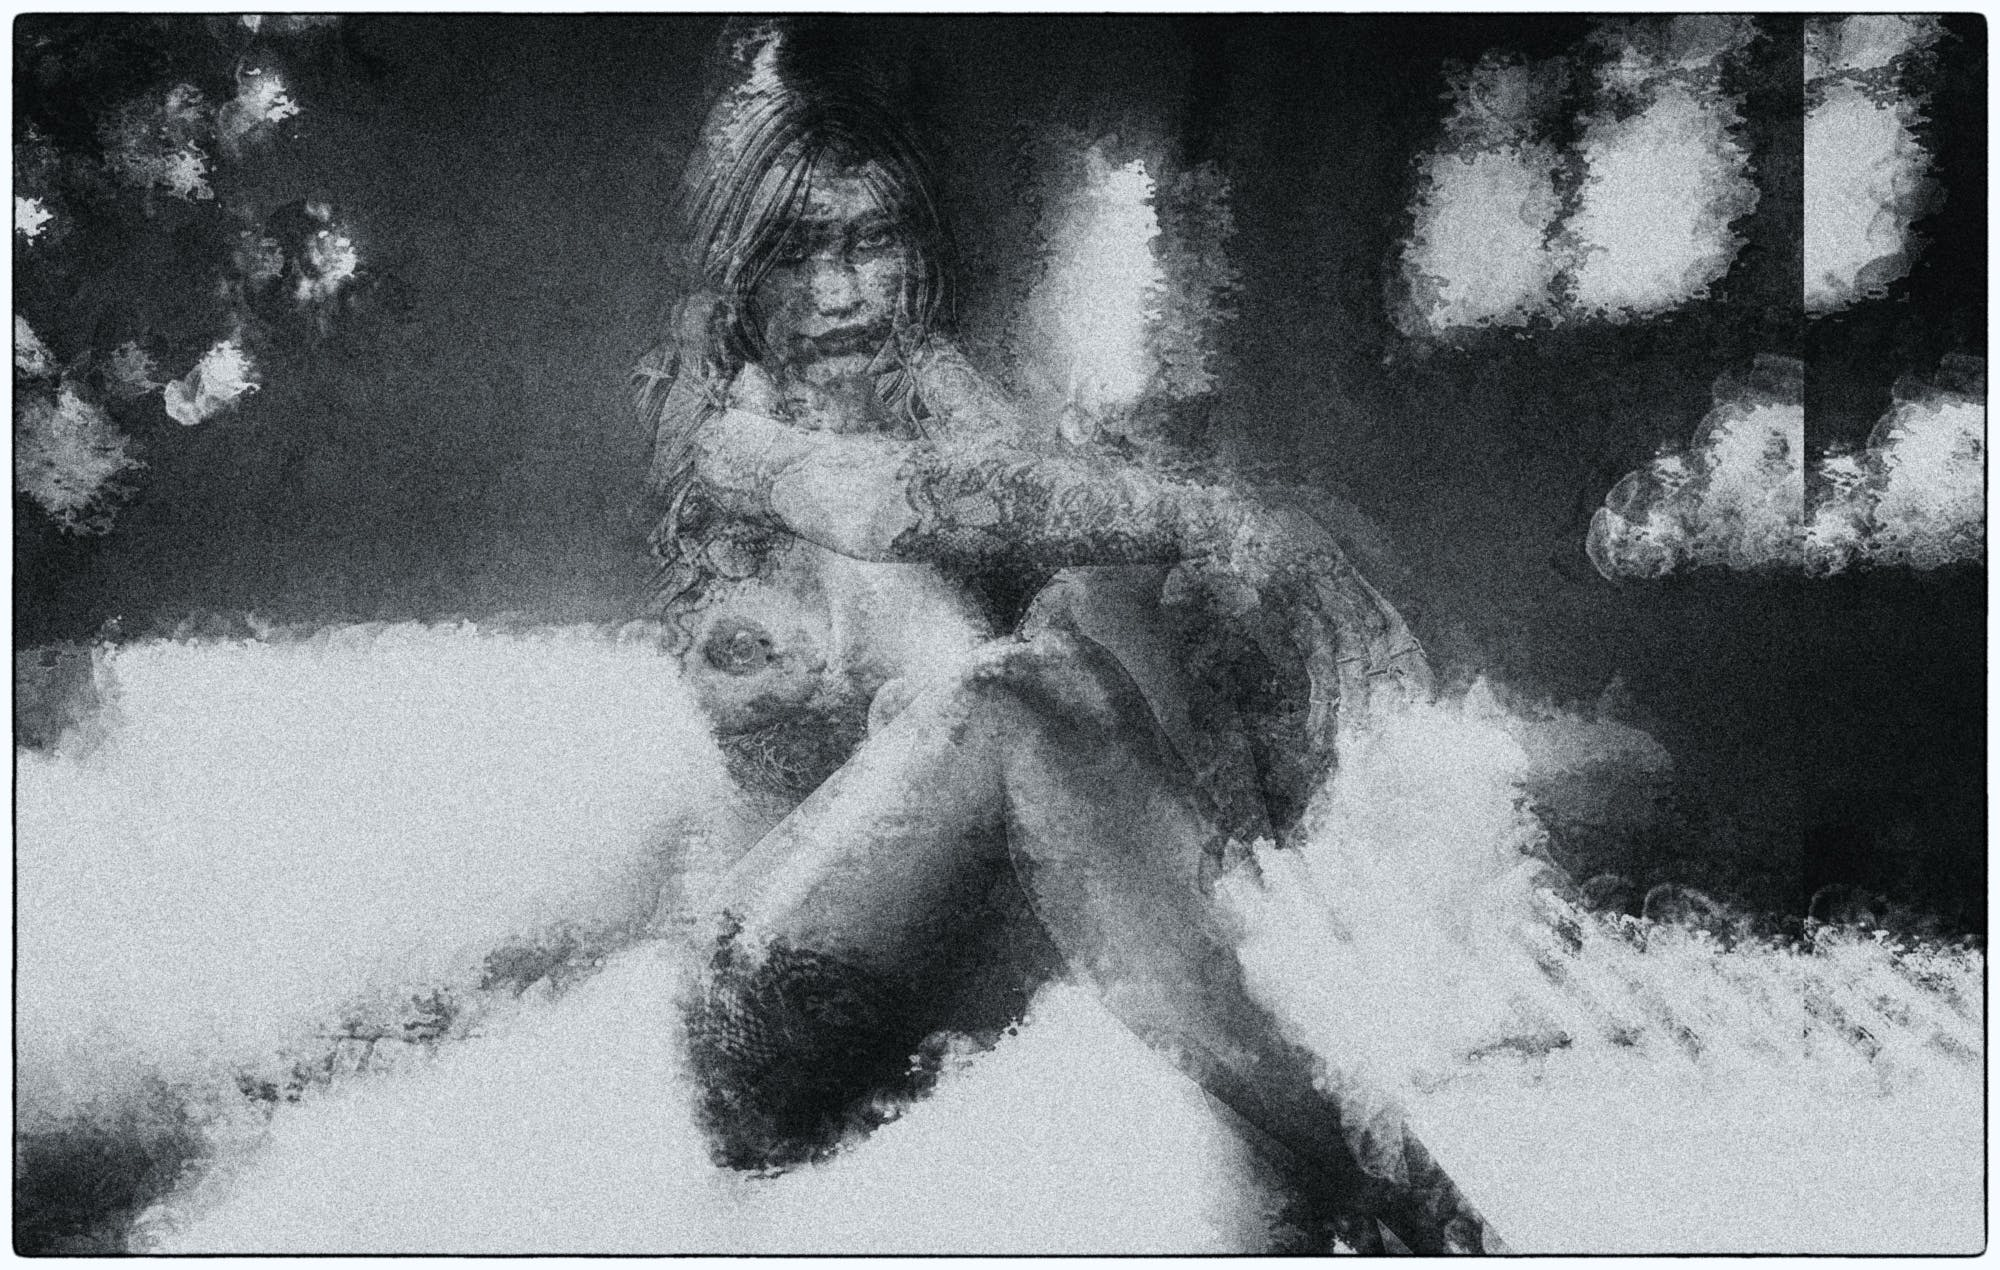 black and white, nude, woman